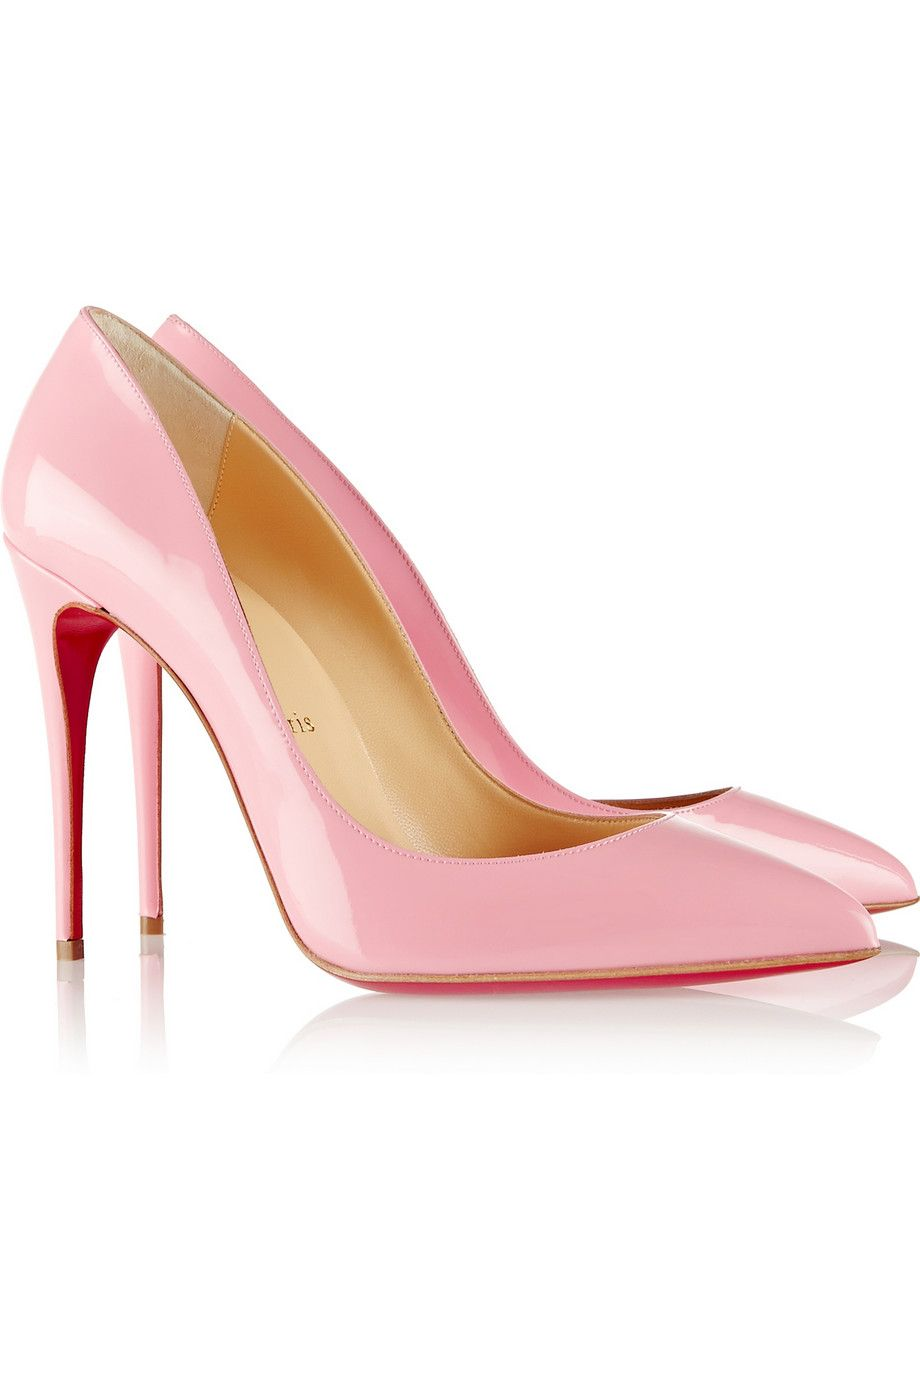 half off c21c8 89401 Christian Louboutin | Pigalle Follies 100 patent-leather ...